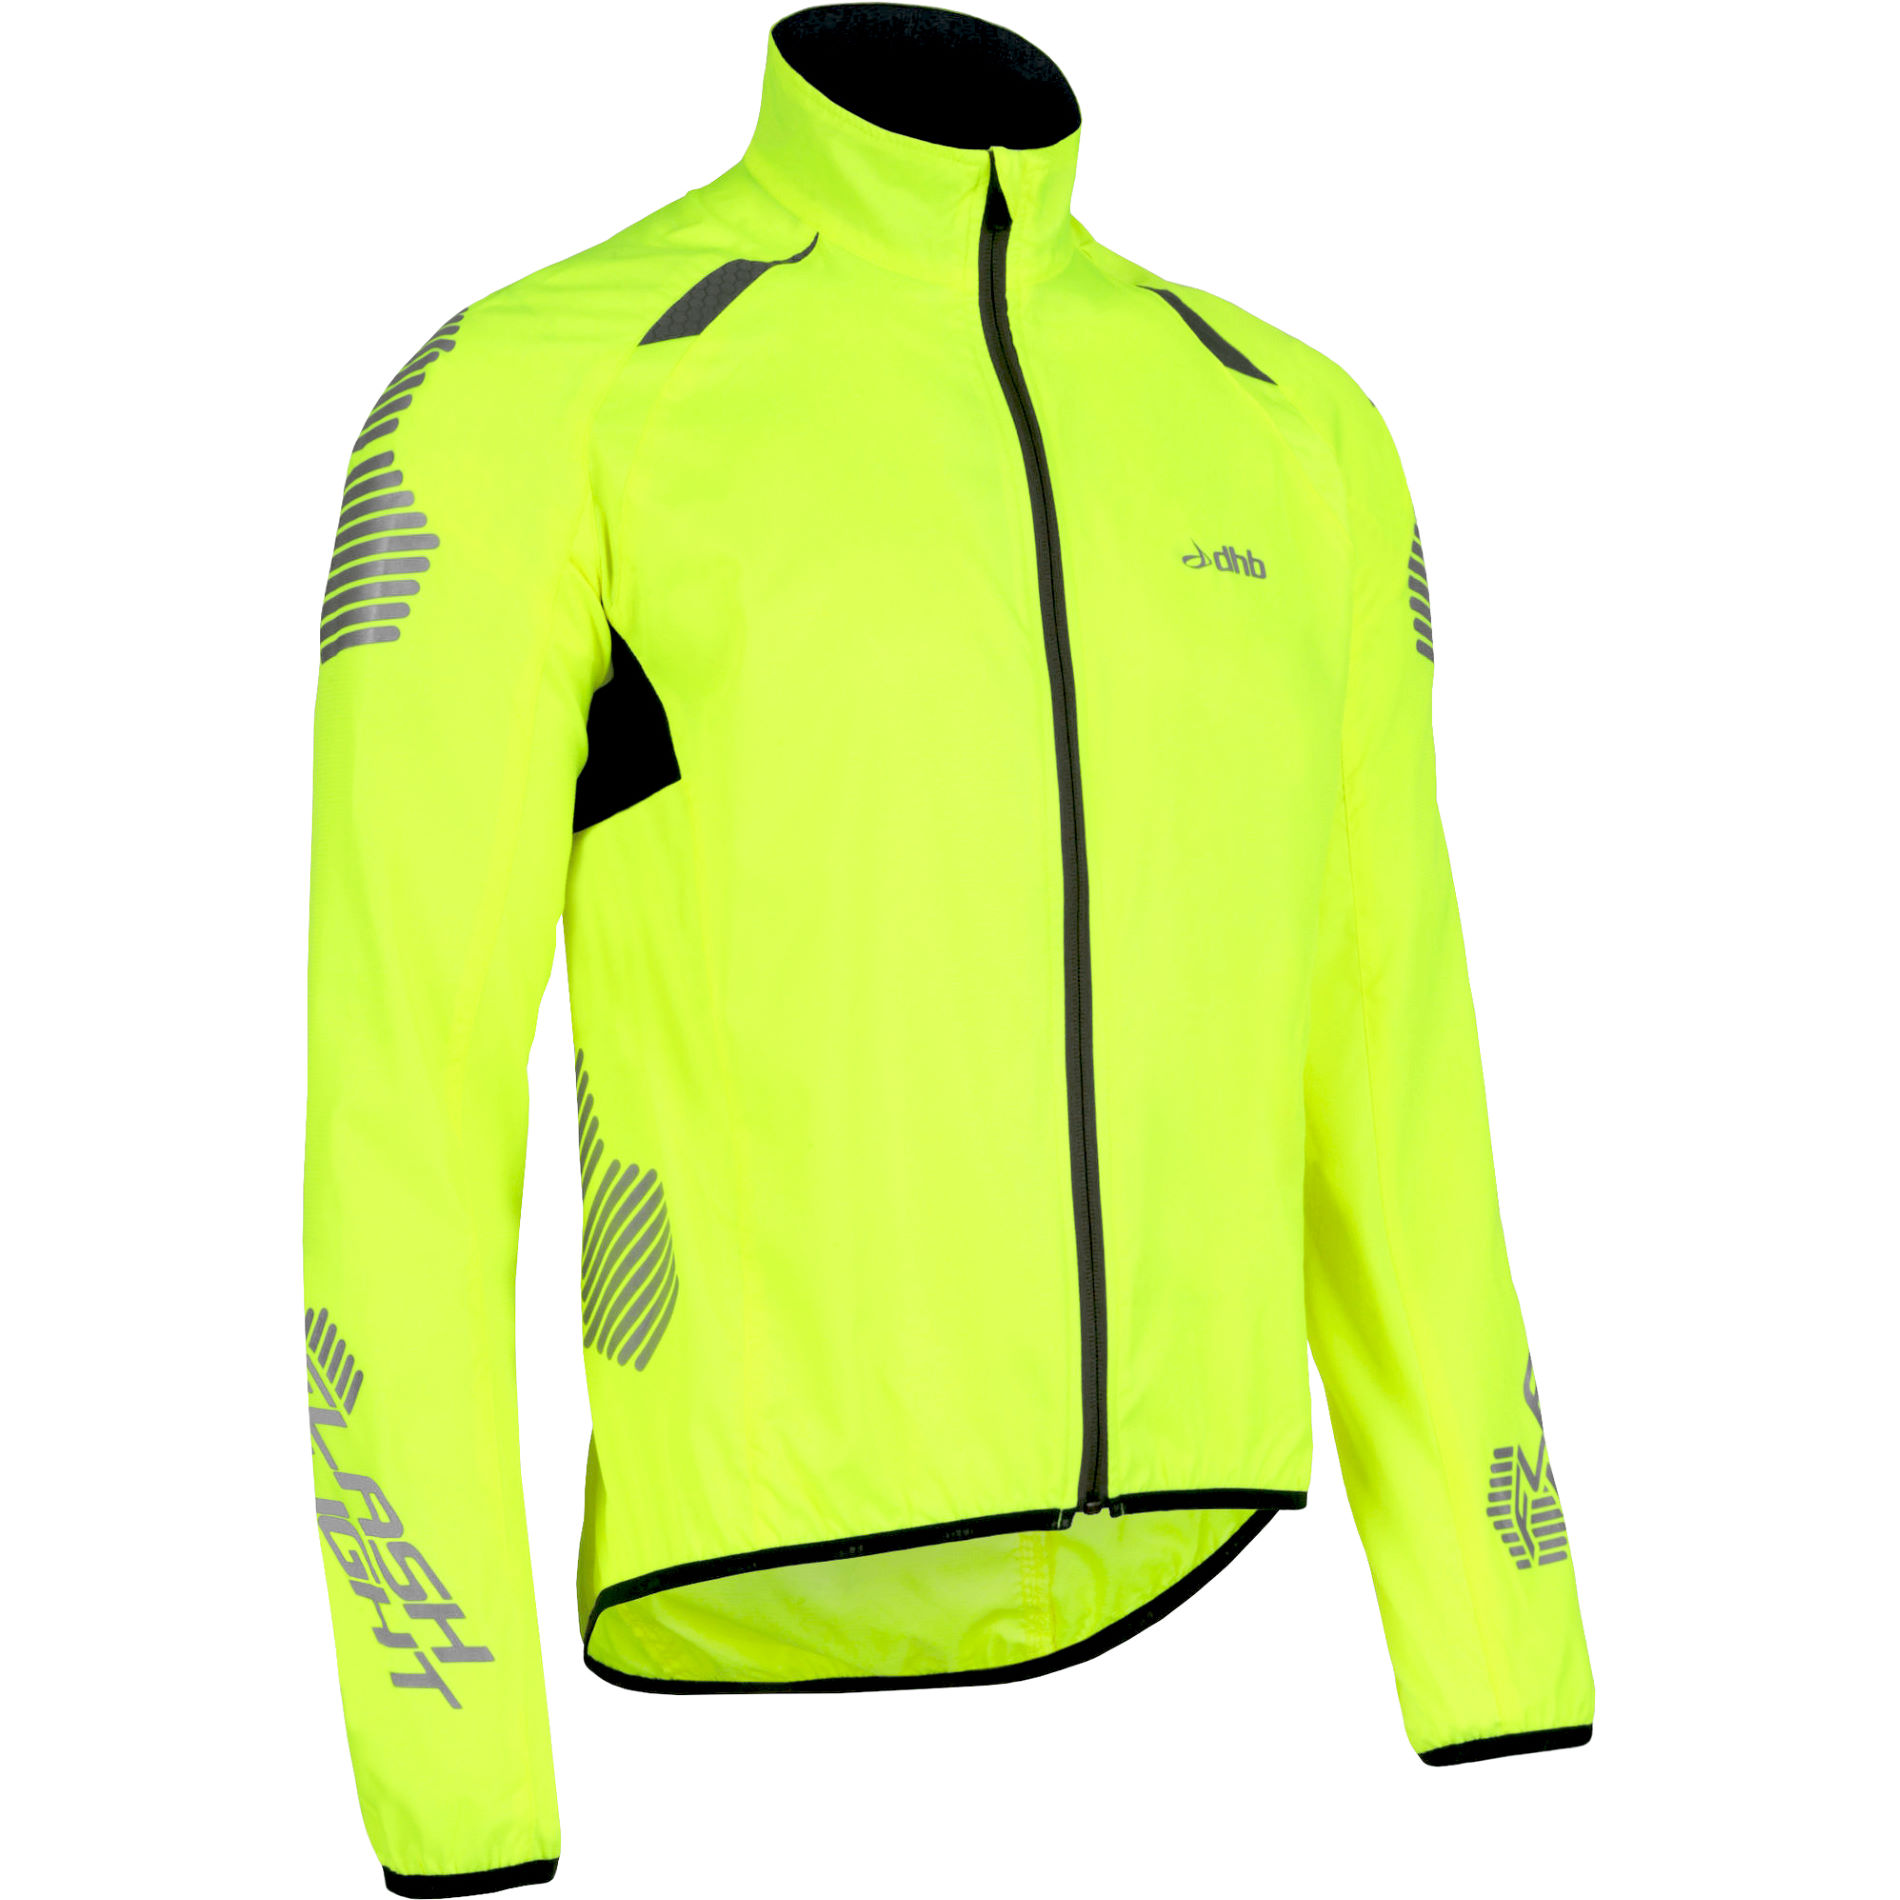 Wiggle | dhb Flashlight Windproof XT Cycling Jacket | Cycling